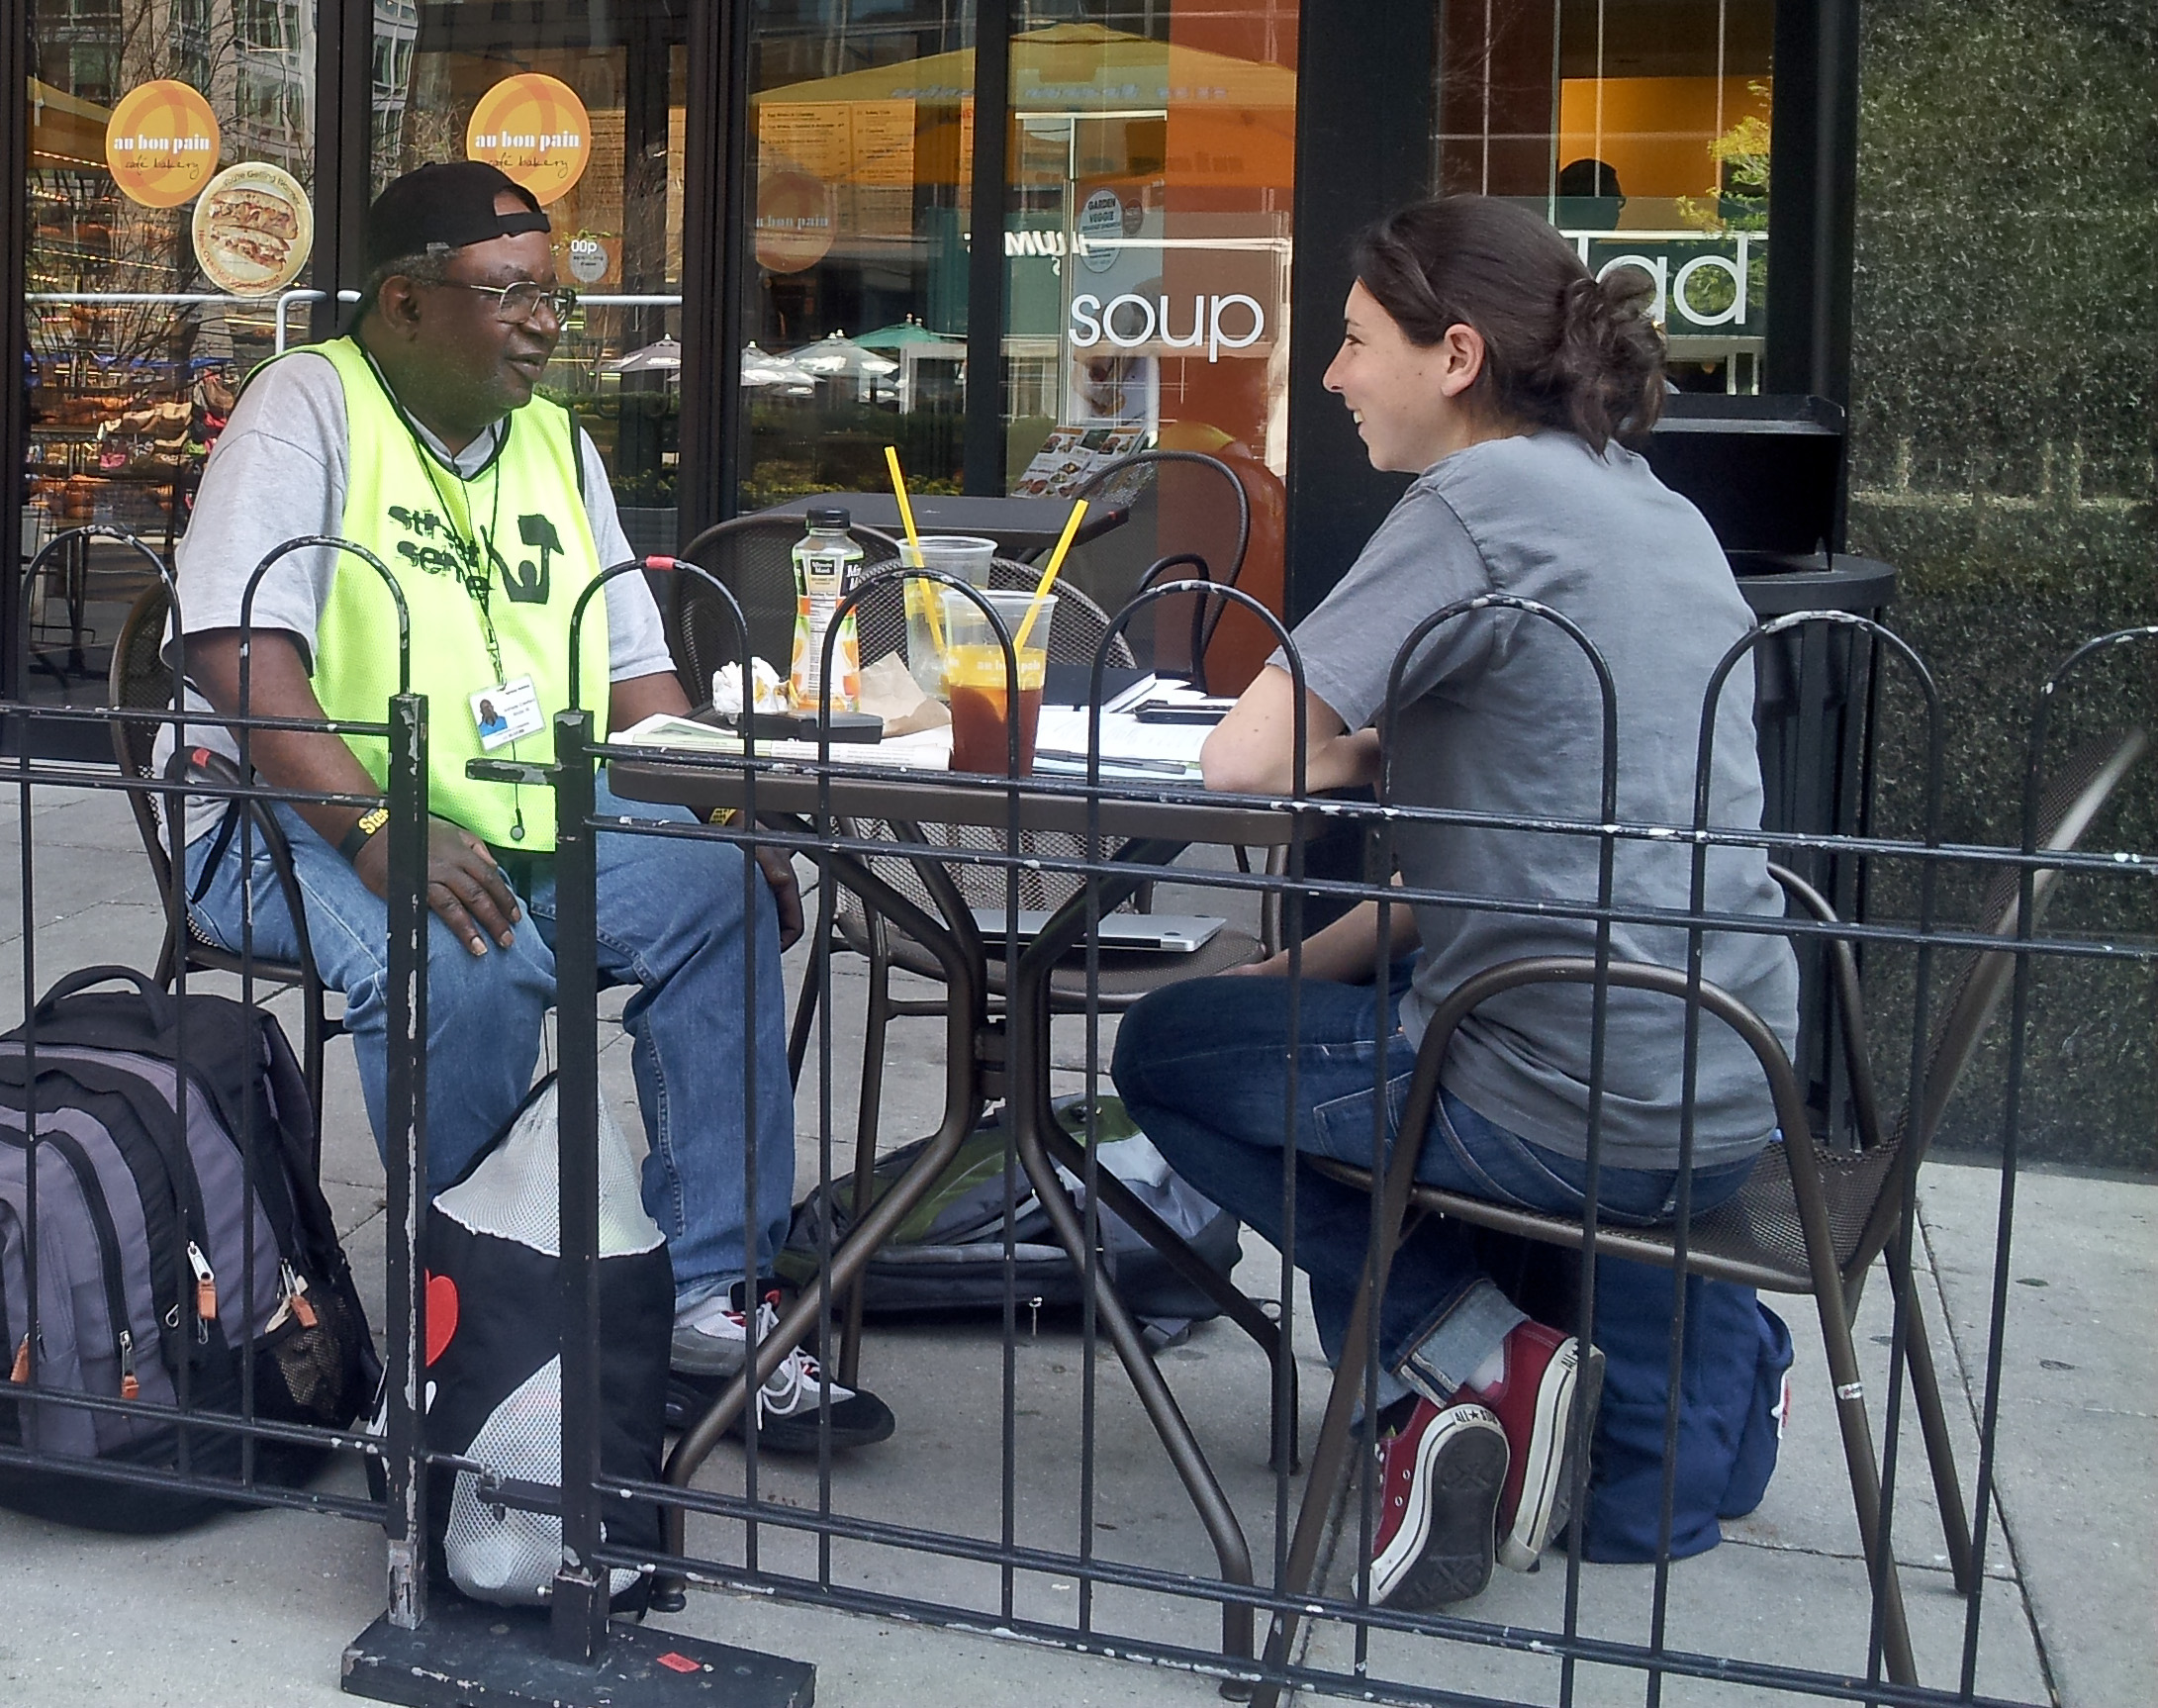 Anthony and Elizabeth meeting at Au Bon Pain to discuss housing options.